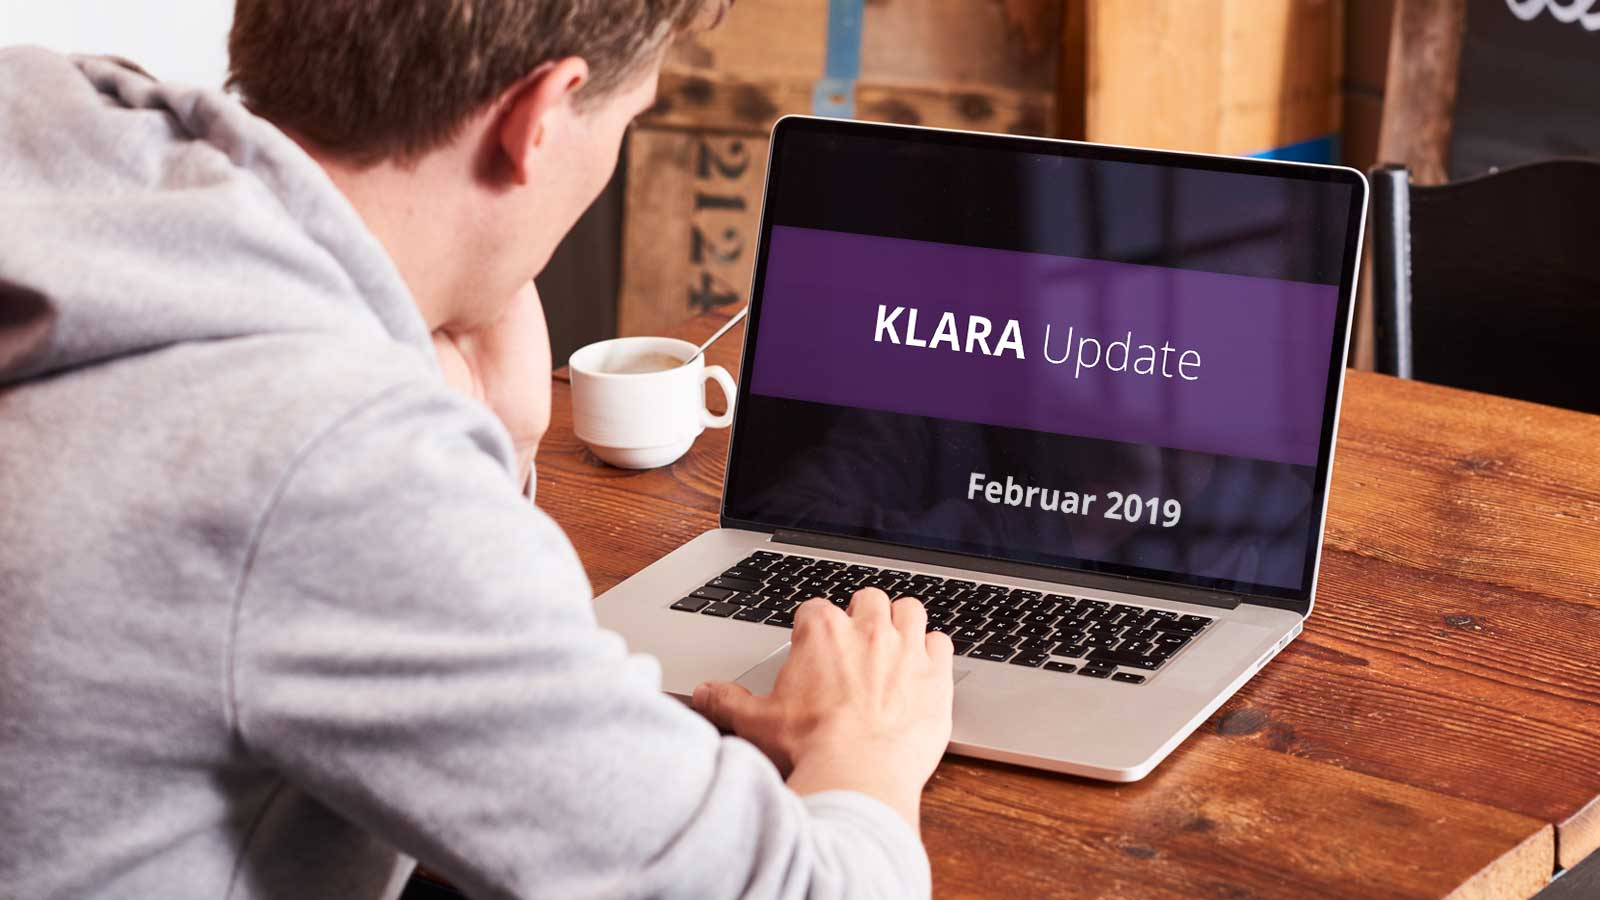 klara_update_februar_visual